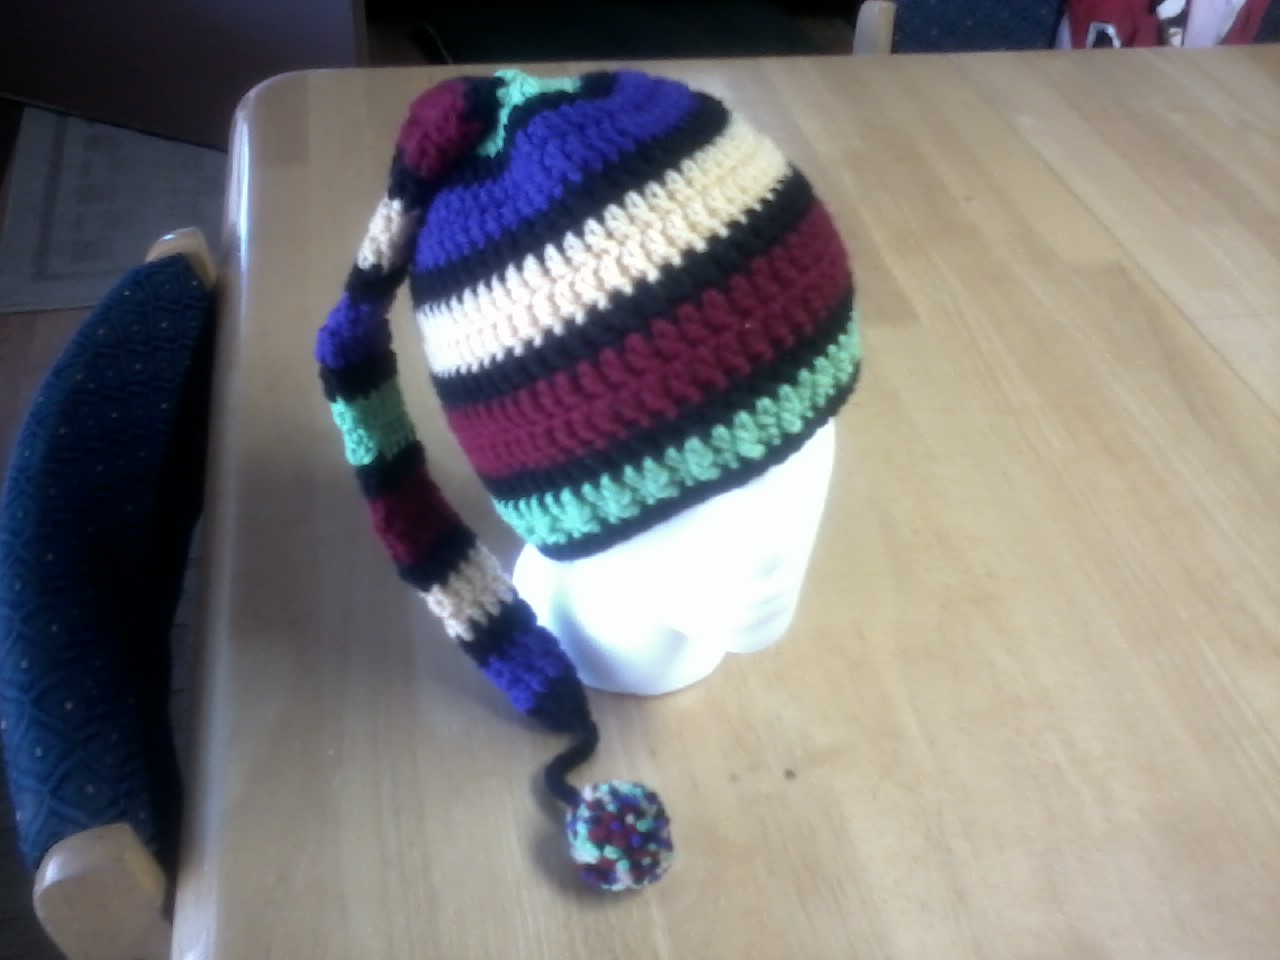 A Stitch At A Time for Amy B Stitched  Crazy Crocheted Ski Hat Pattern 0617f7b423d